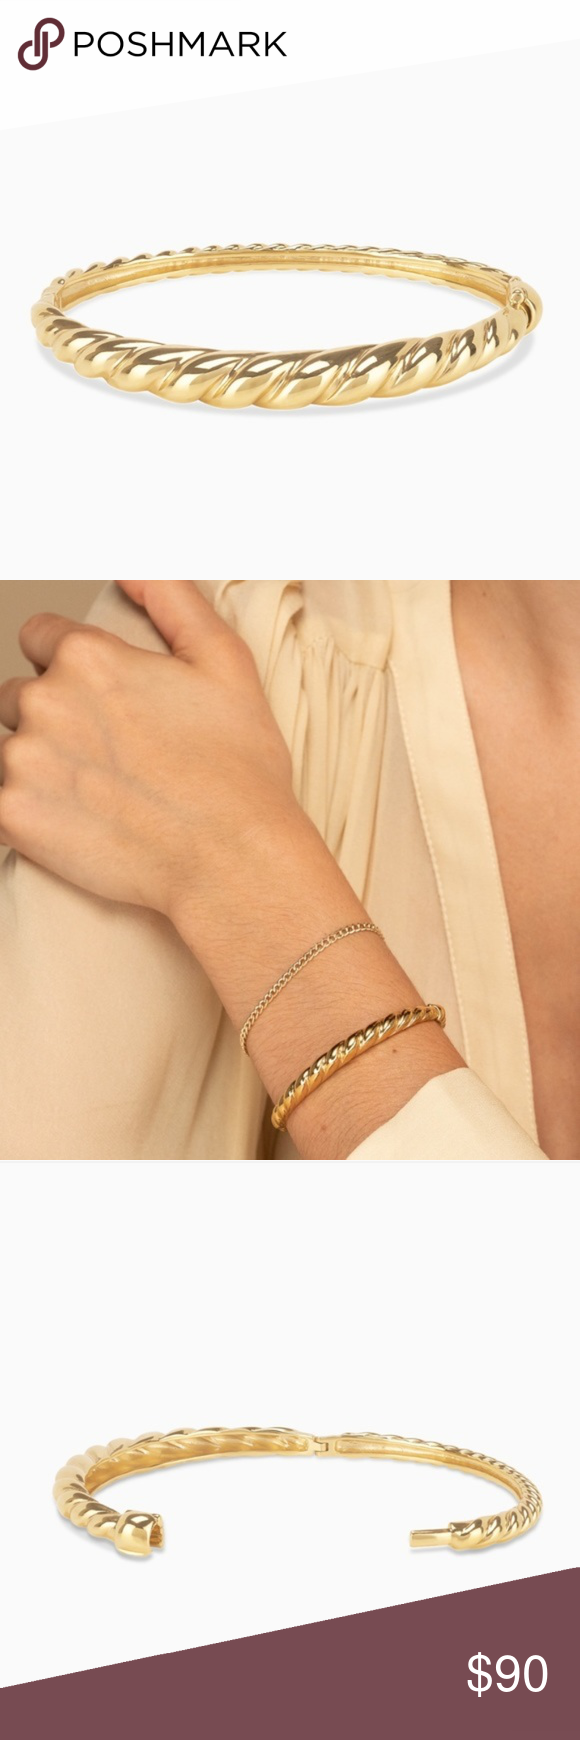 NIB MEJURI CRESCENT DOME BRACELET DETAILS - Made in gold vermeil: a thick 18k… thumbnail